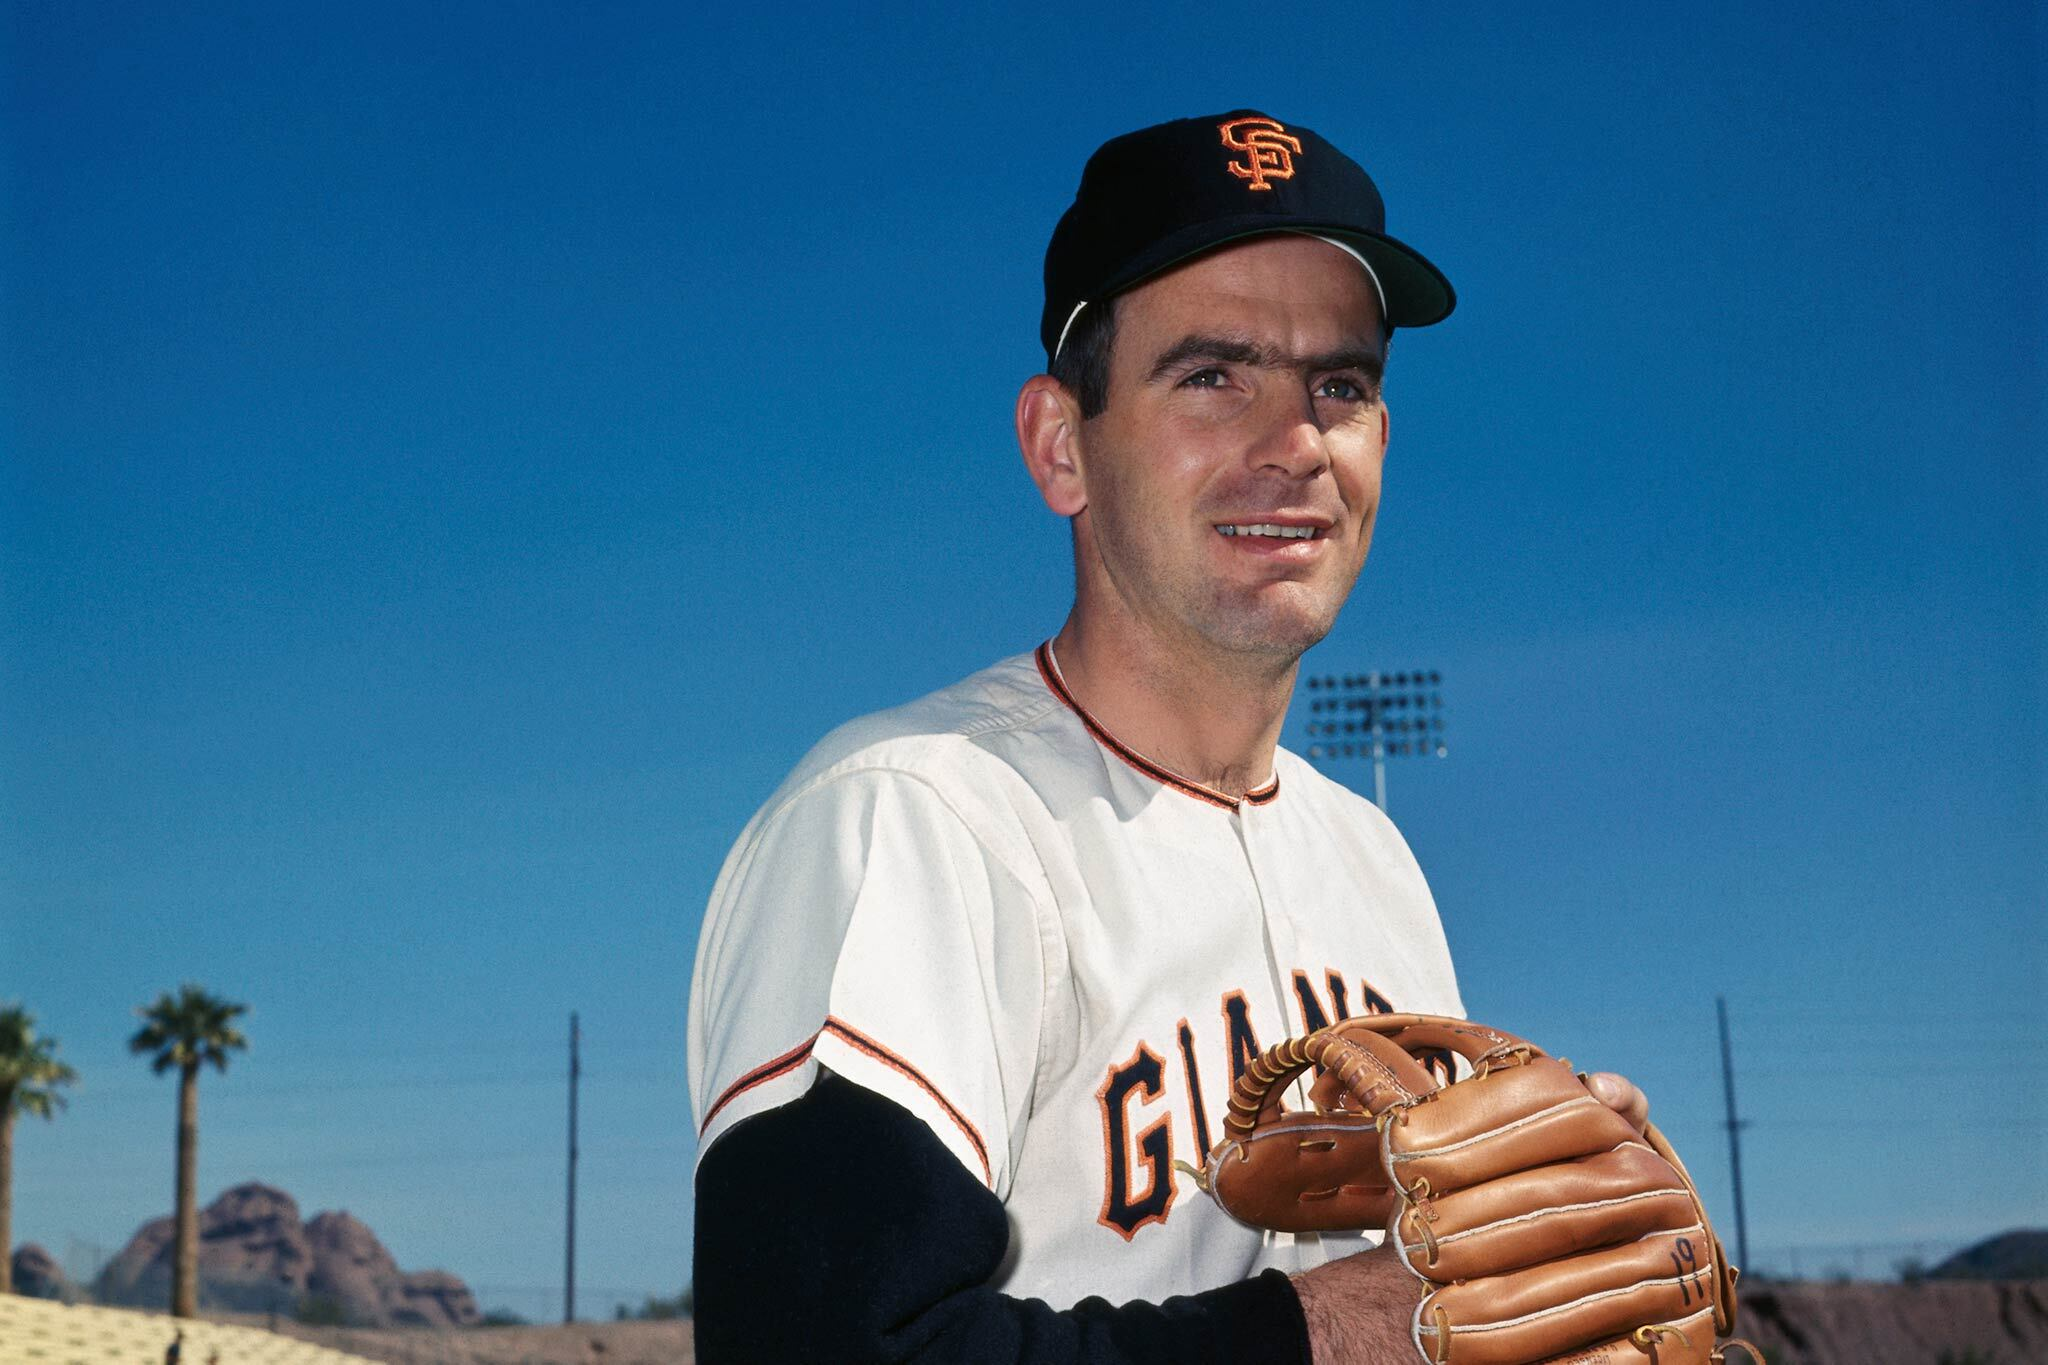 The moonshot story of Giants' Gaylord Perry was labeled a 'legend' by Snopes. Is that fair?